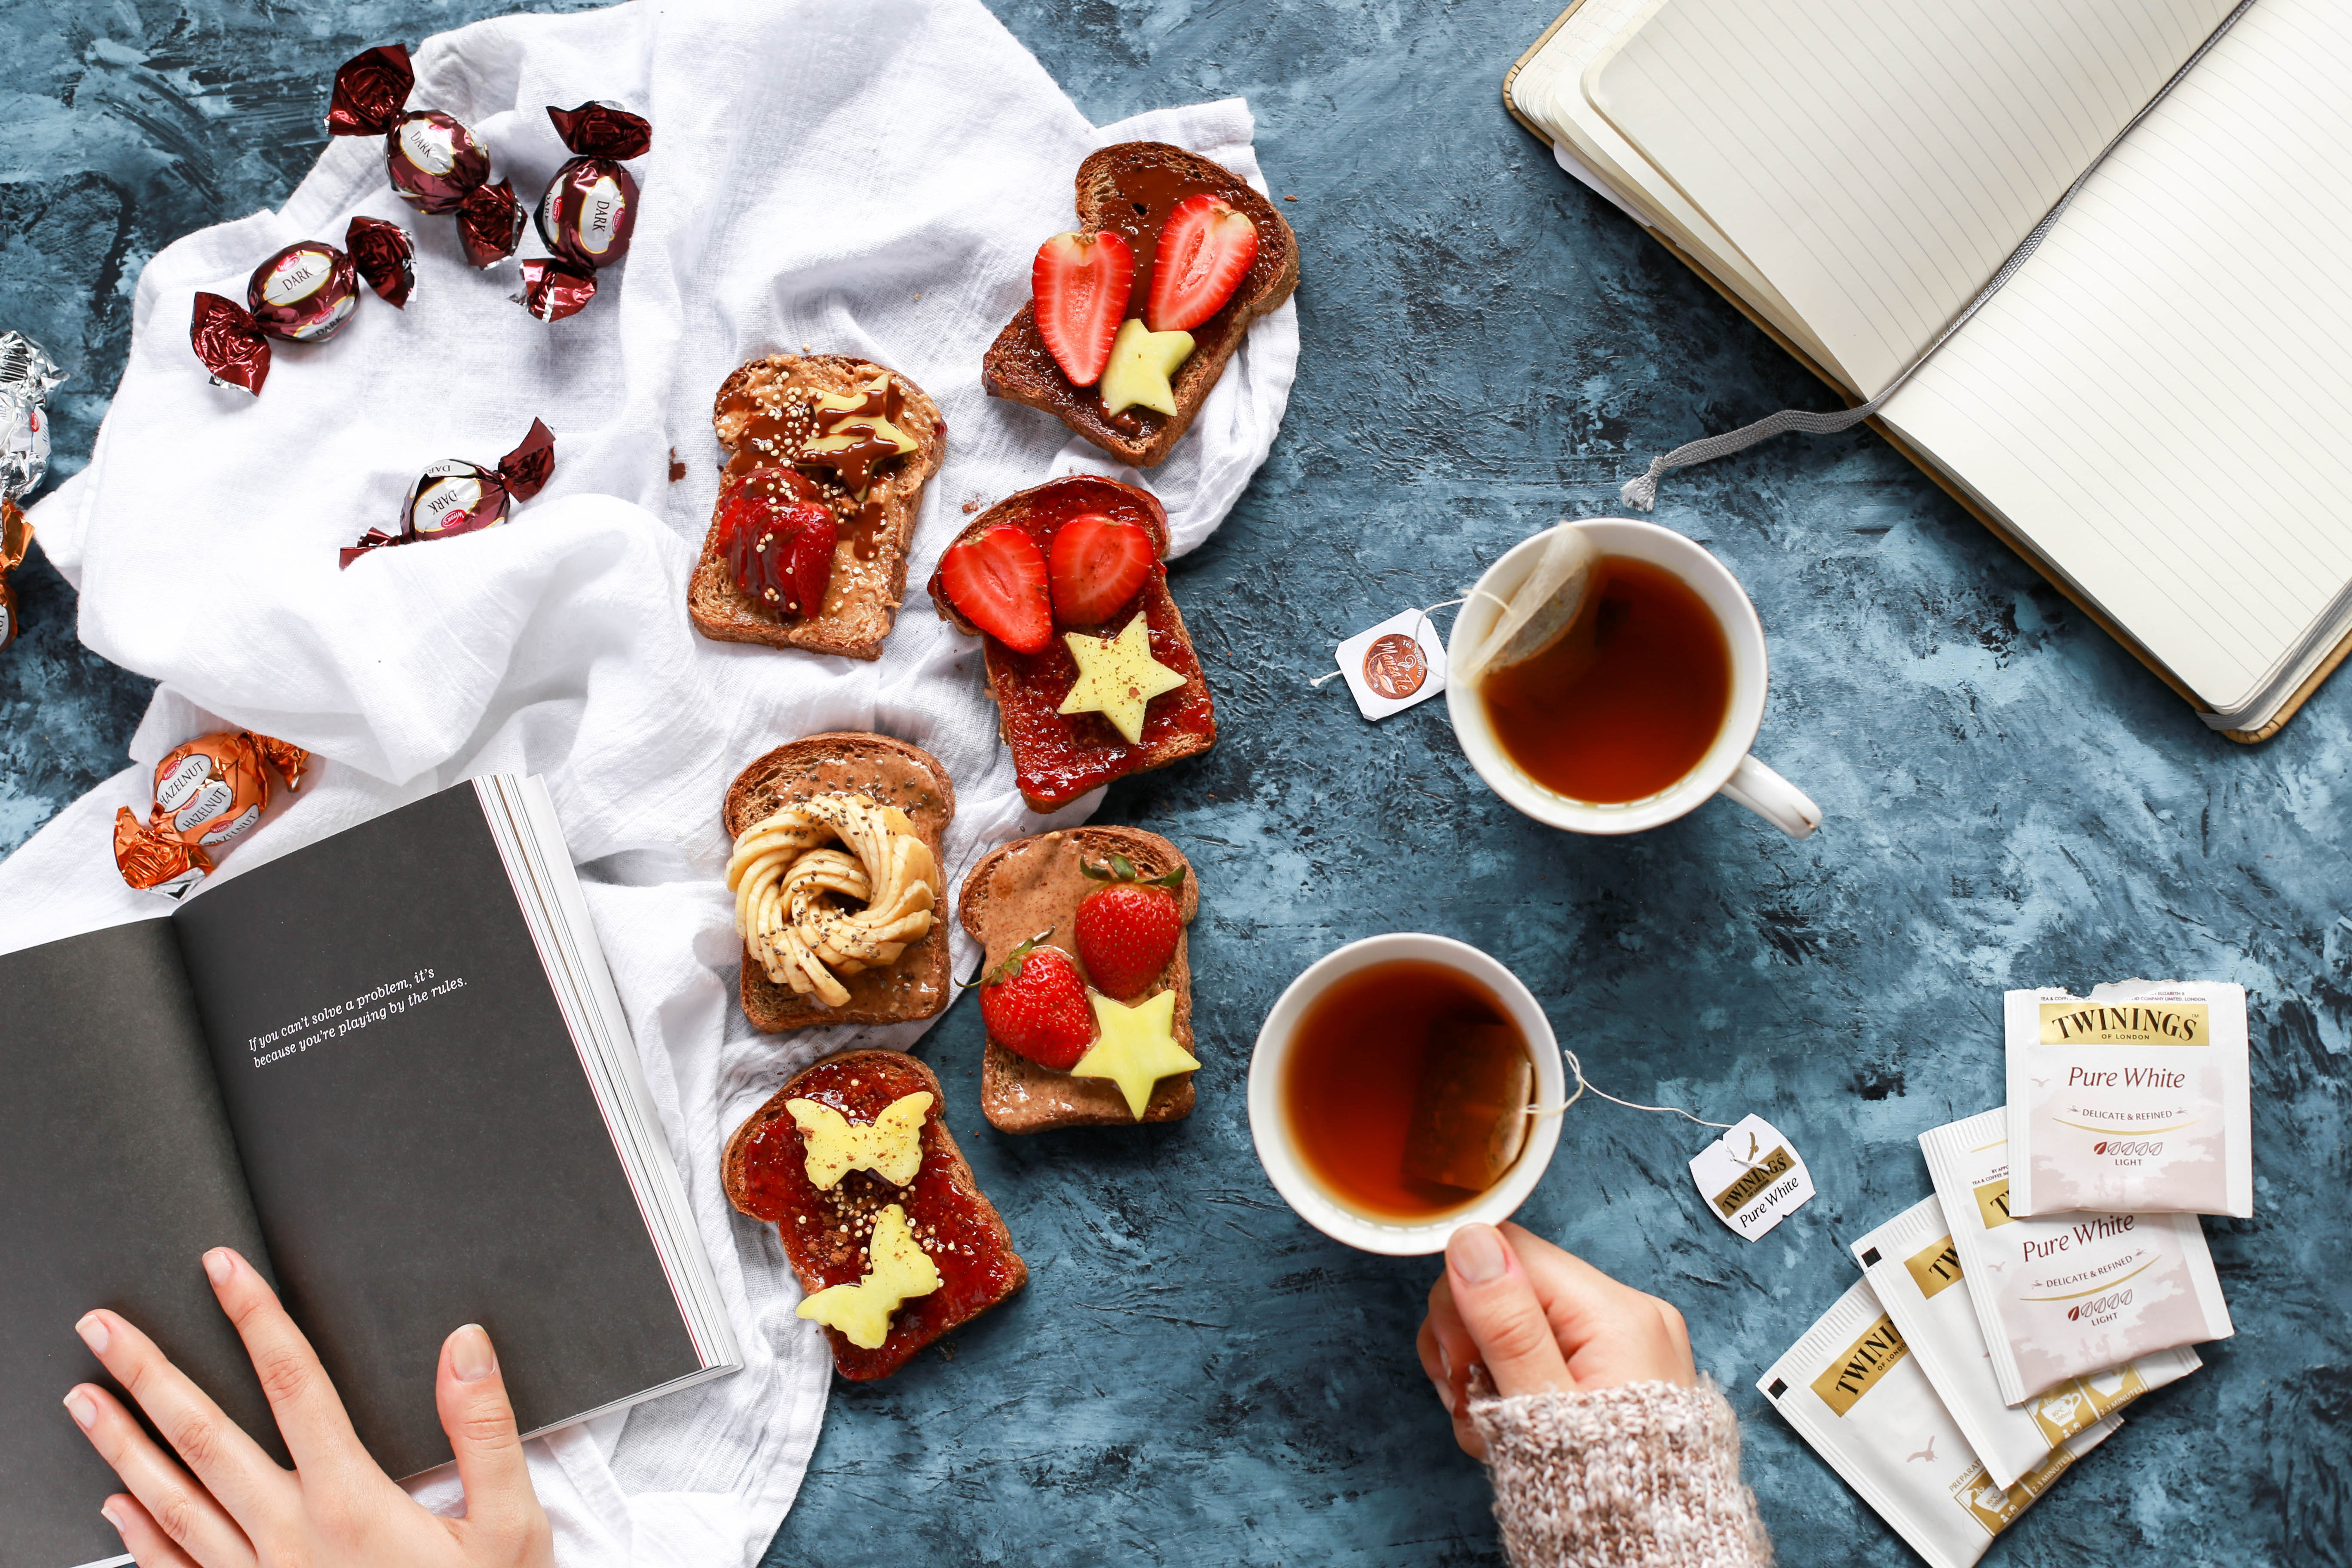 Person reading, sipping English tea and eating berries and bananas on toast with chocolates